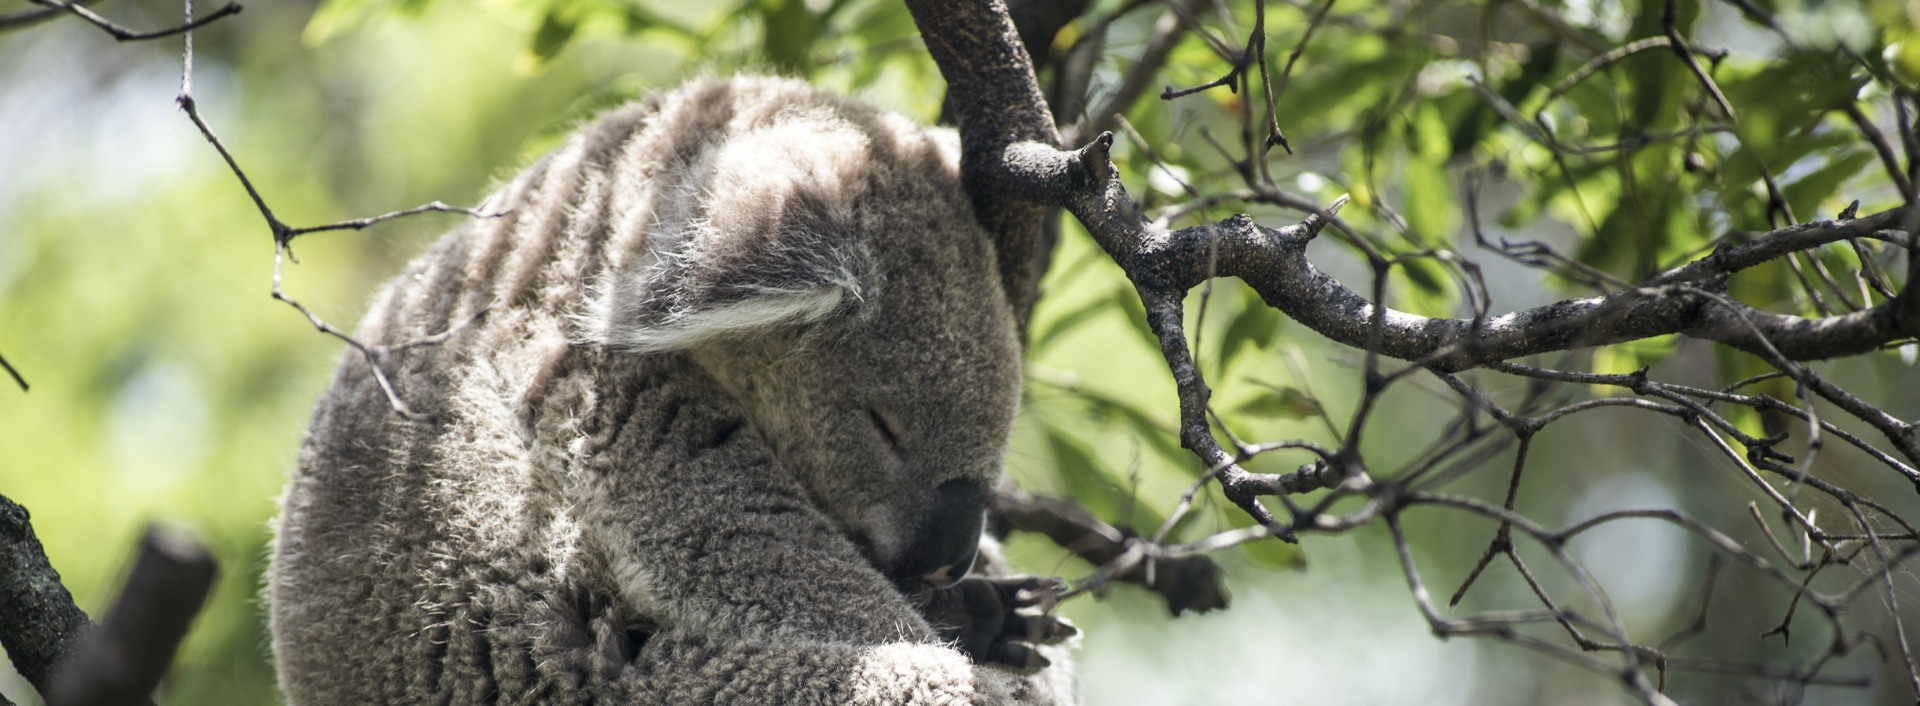 A koala is zonked and has crashed on a tree branch are two examples of slang words